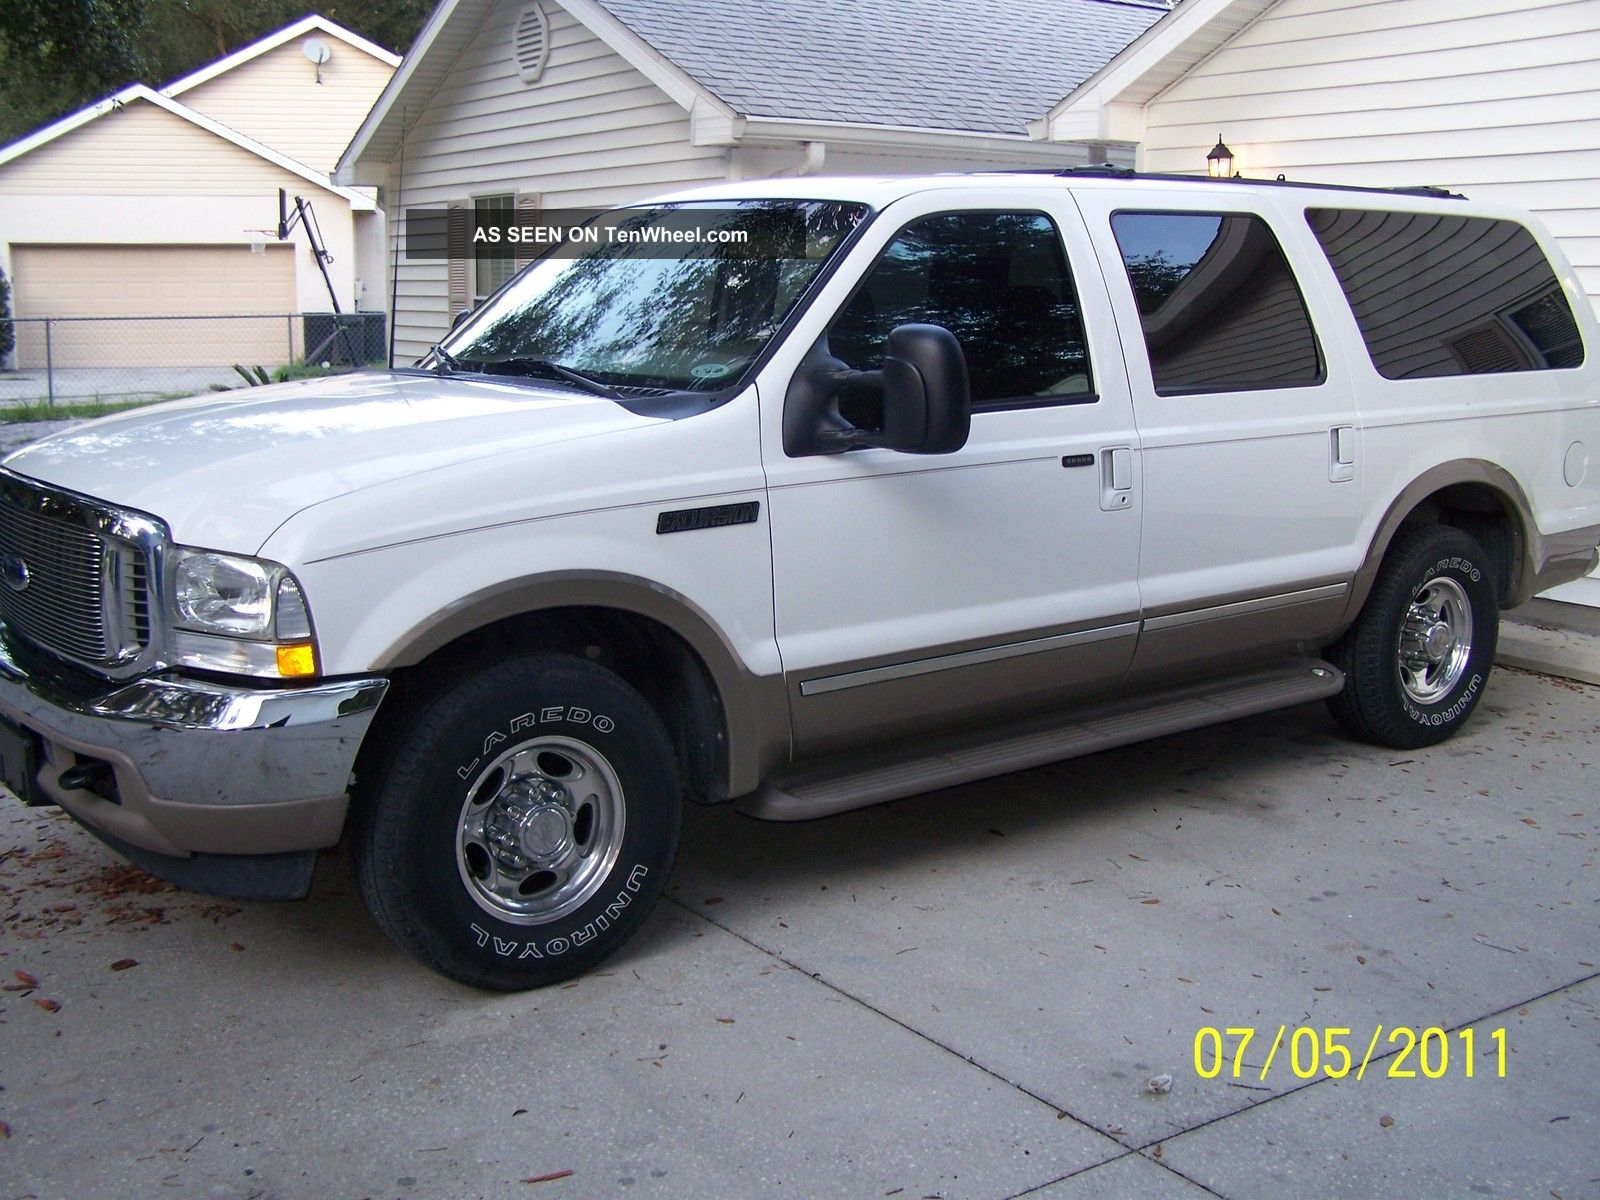 2002 ford v10 yamaha warrior 350 ignition wiring diagram limited white excursion suv v 10 mechanic